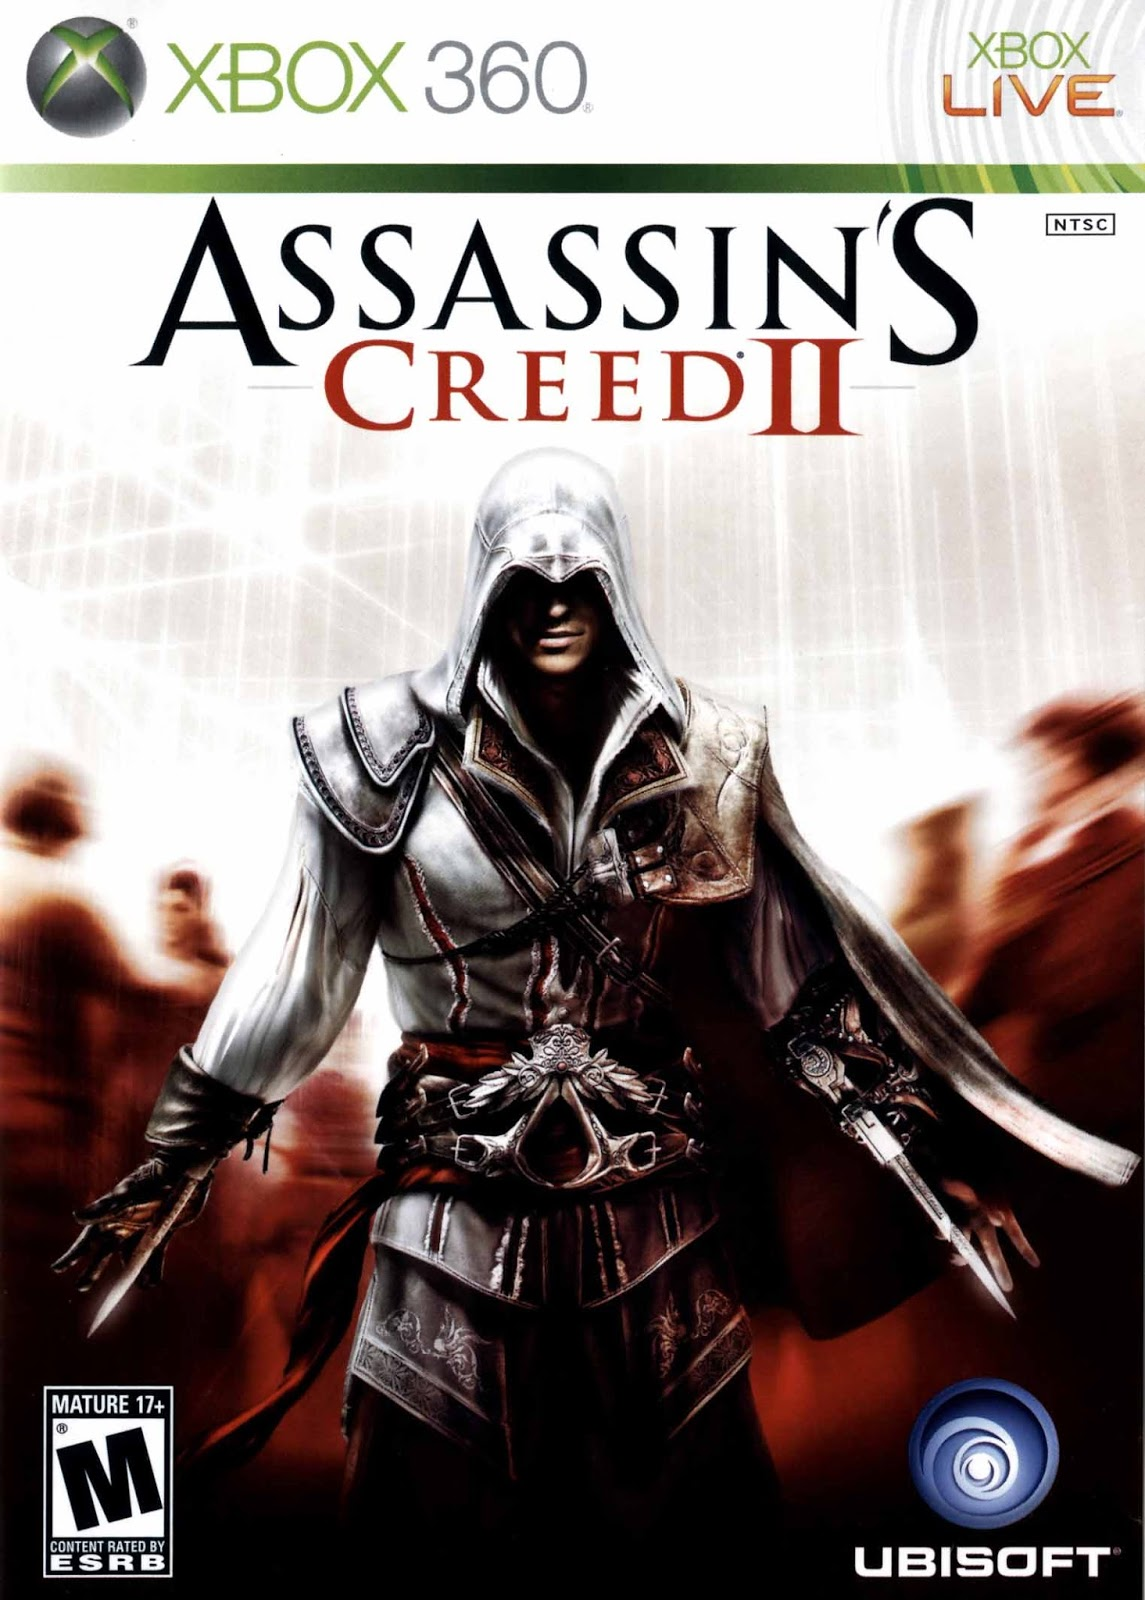 Assassin's Creed II Legendado PT-BR (LT 2.0/3.0 RF) Xbox 360 Torrent